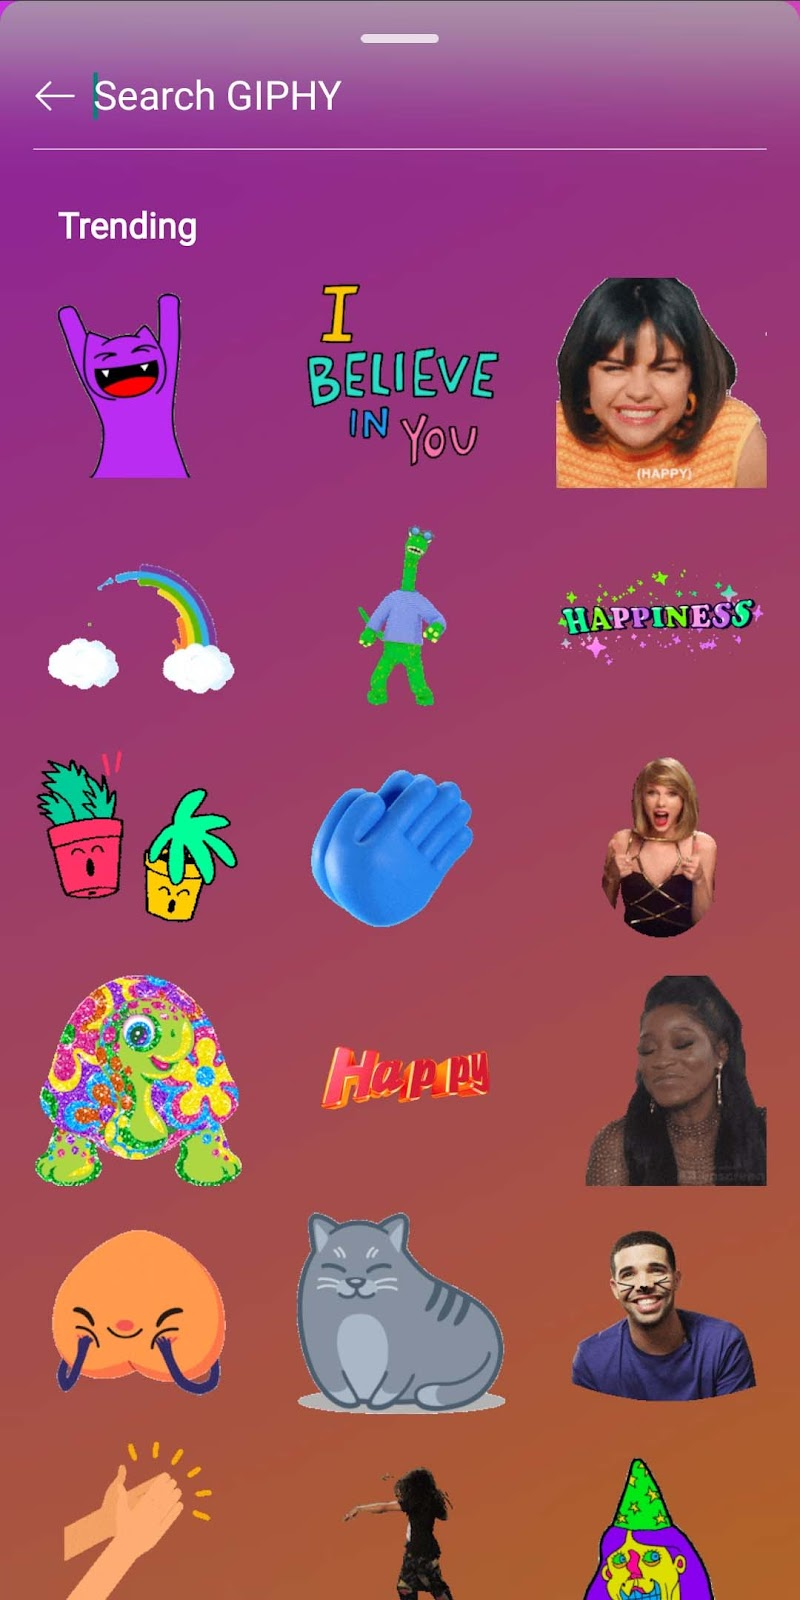 GIPHY Search in Instagram